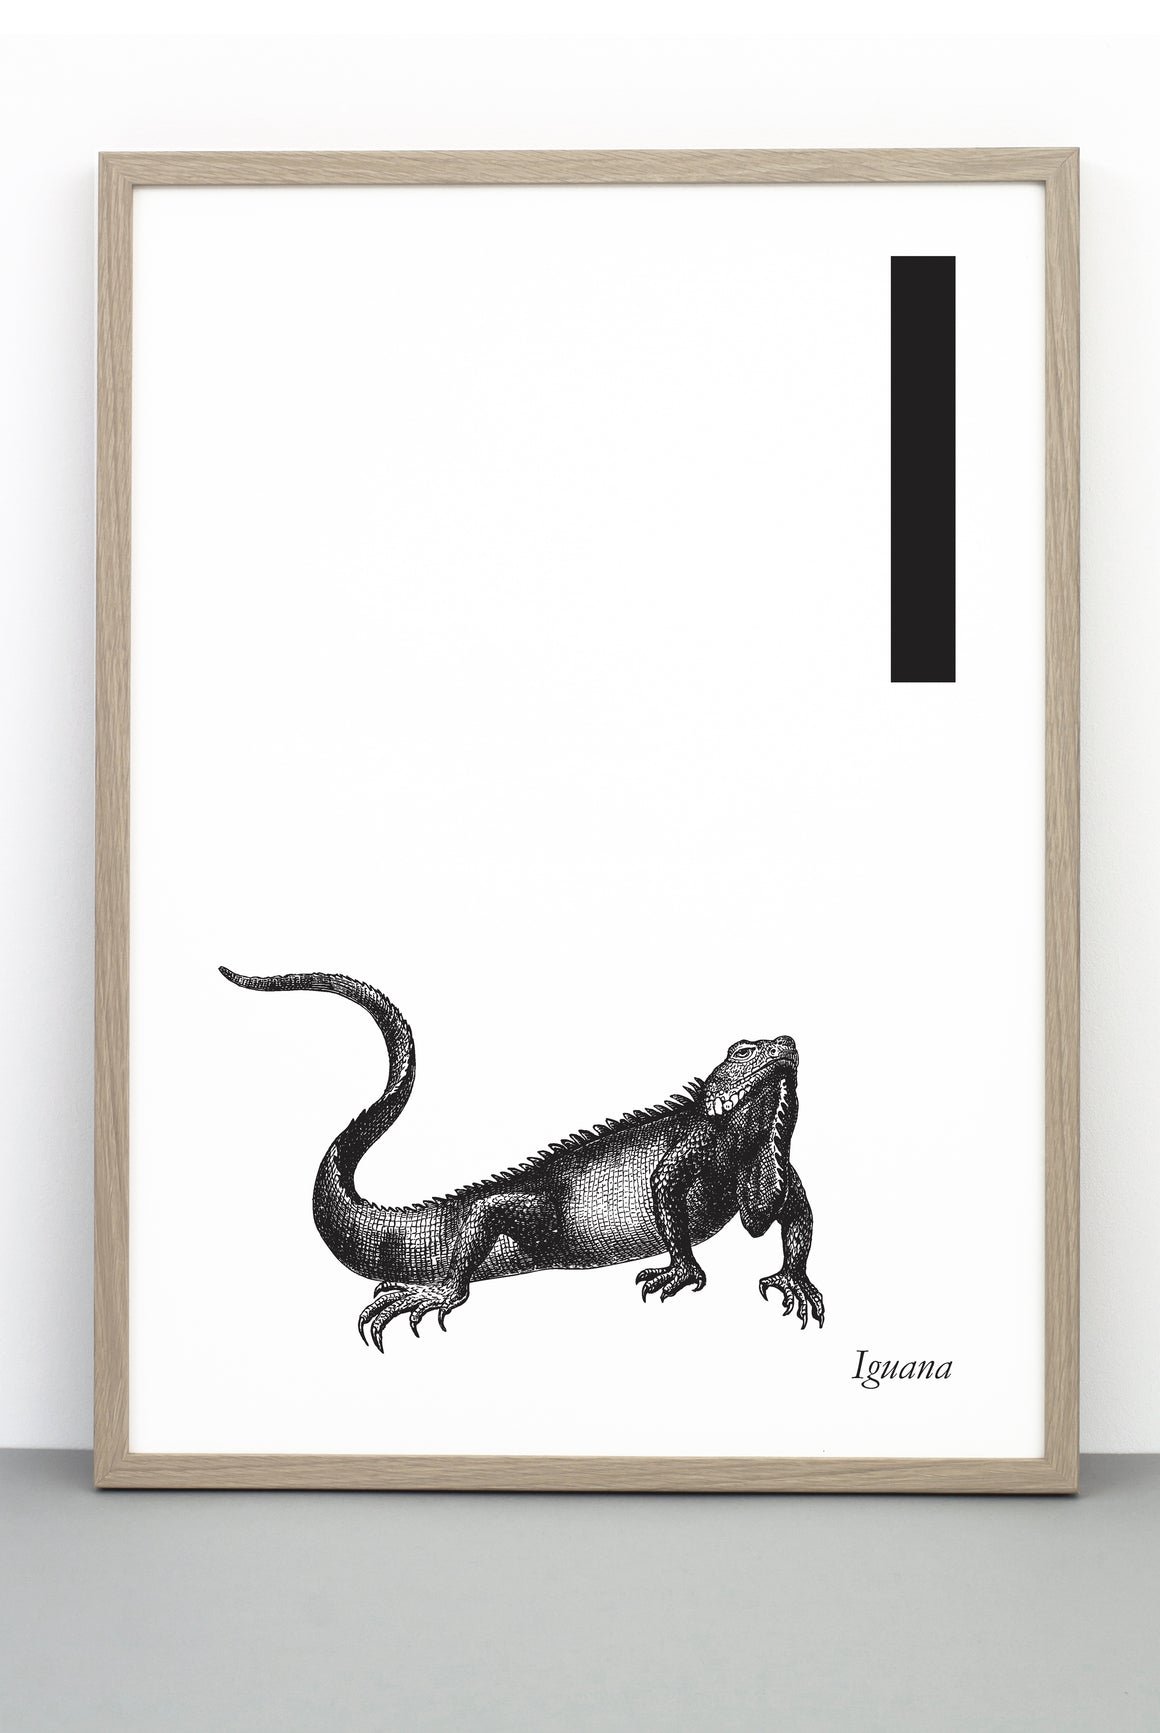 ANIMAL LETTER I, IGUANA, I DOWNLOADABLE PRINT